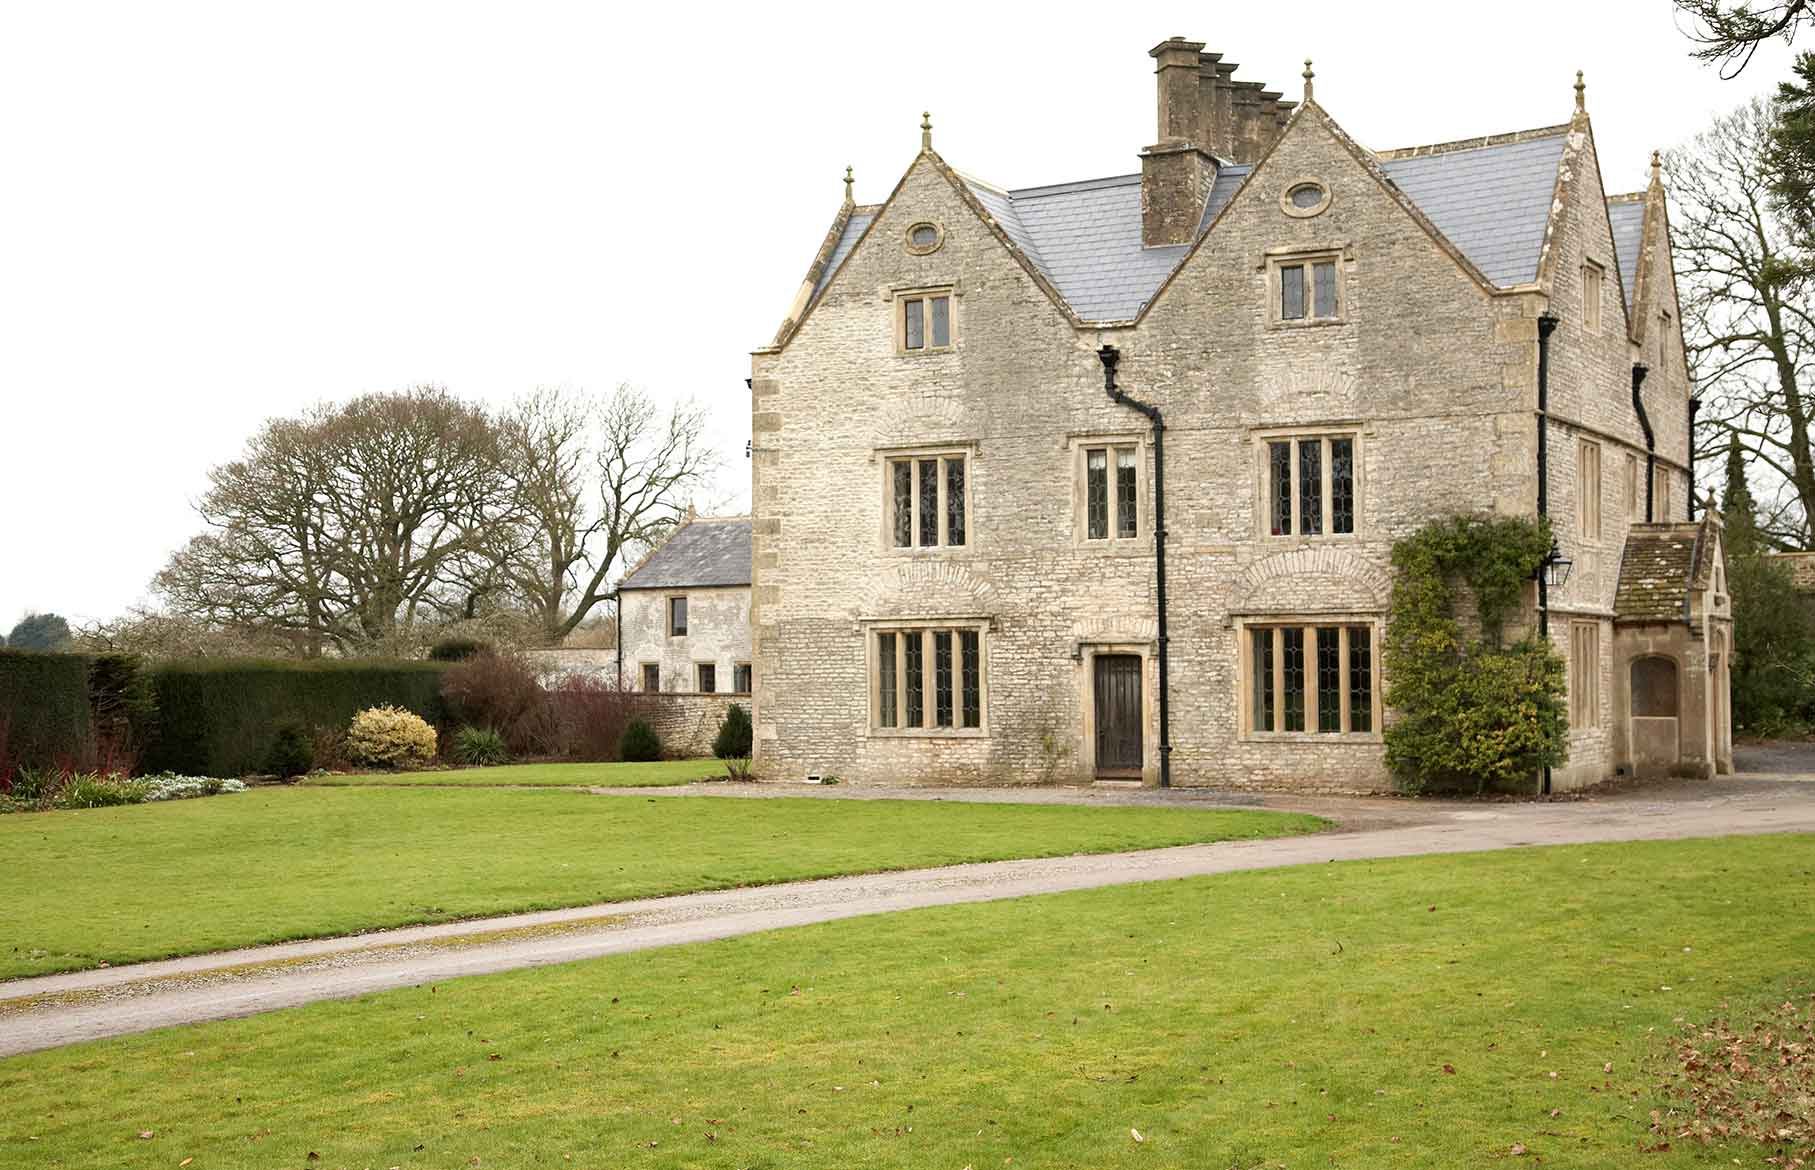 Doynton Manor House